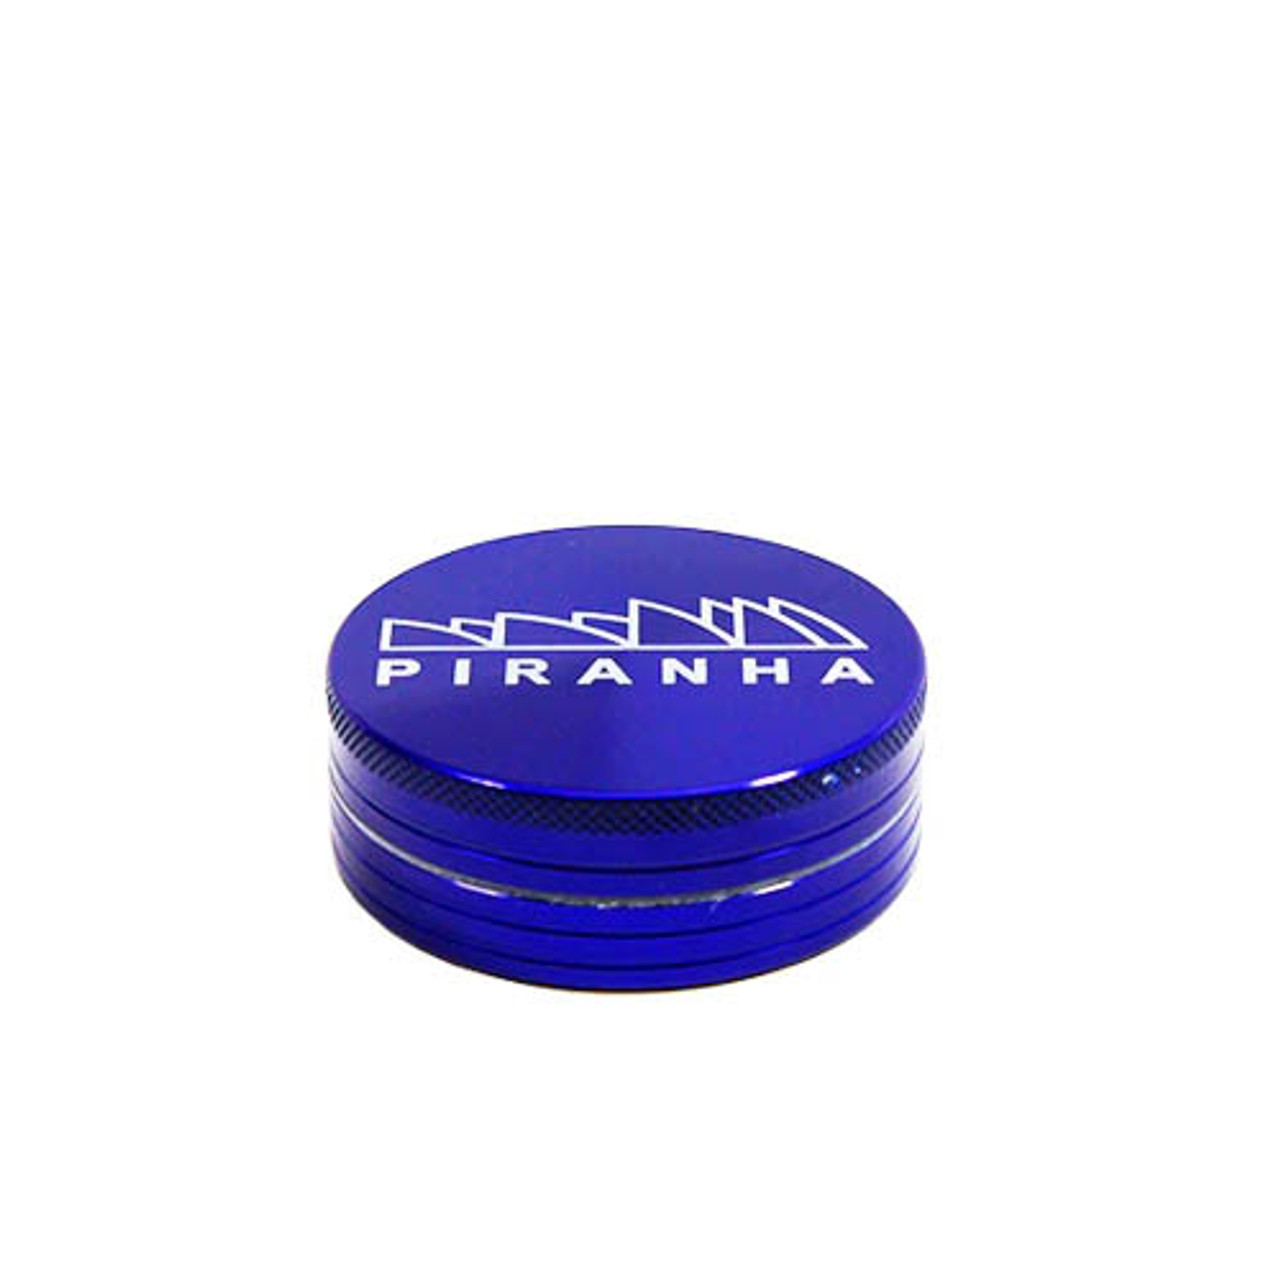 Piranha Grinder 2pc 1.5""